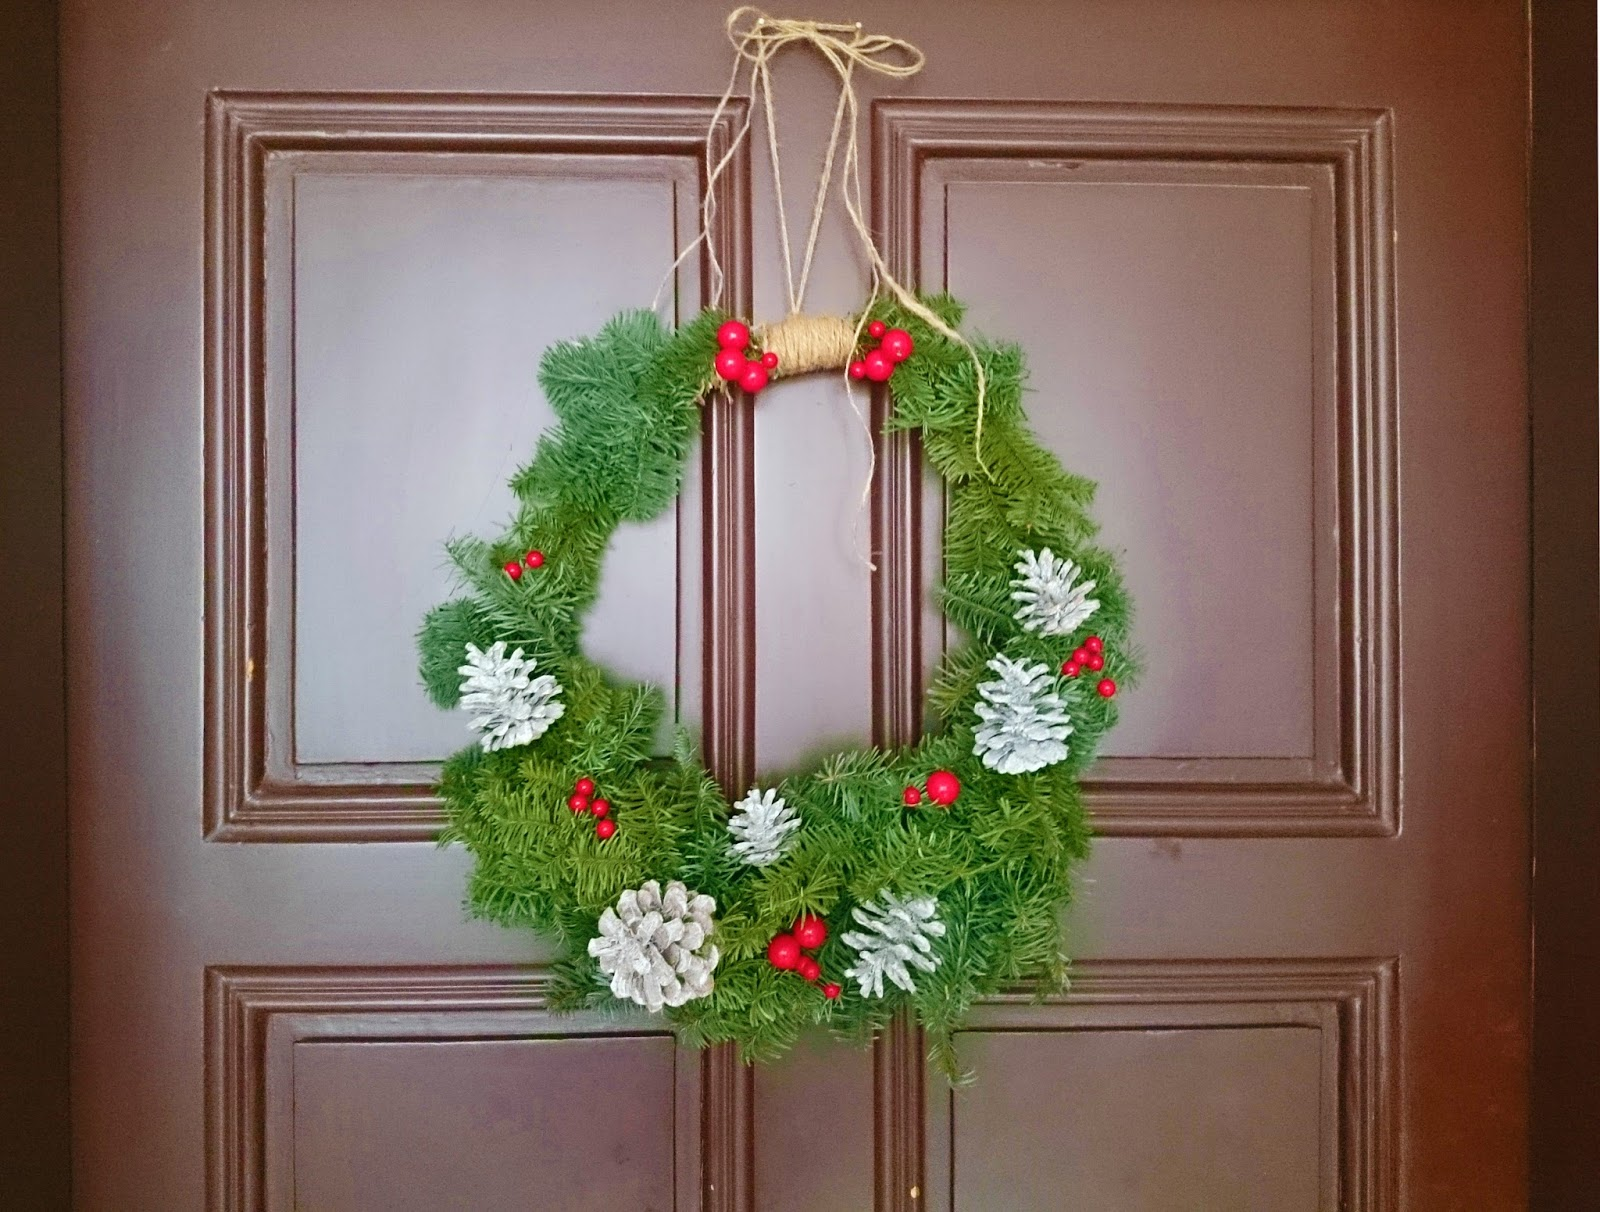 Diy winter wreaths for front door - I Still Hope That Someday I Ll Wake Up And Our Front Door Has Magically Changed Its Color Dark Blue But I Really Like How The Wreath Makes It A Lot